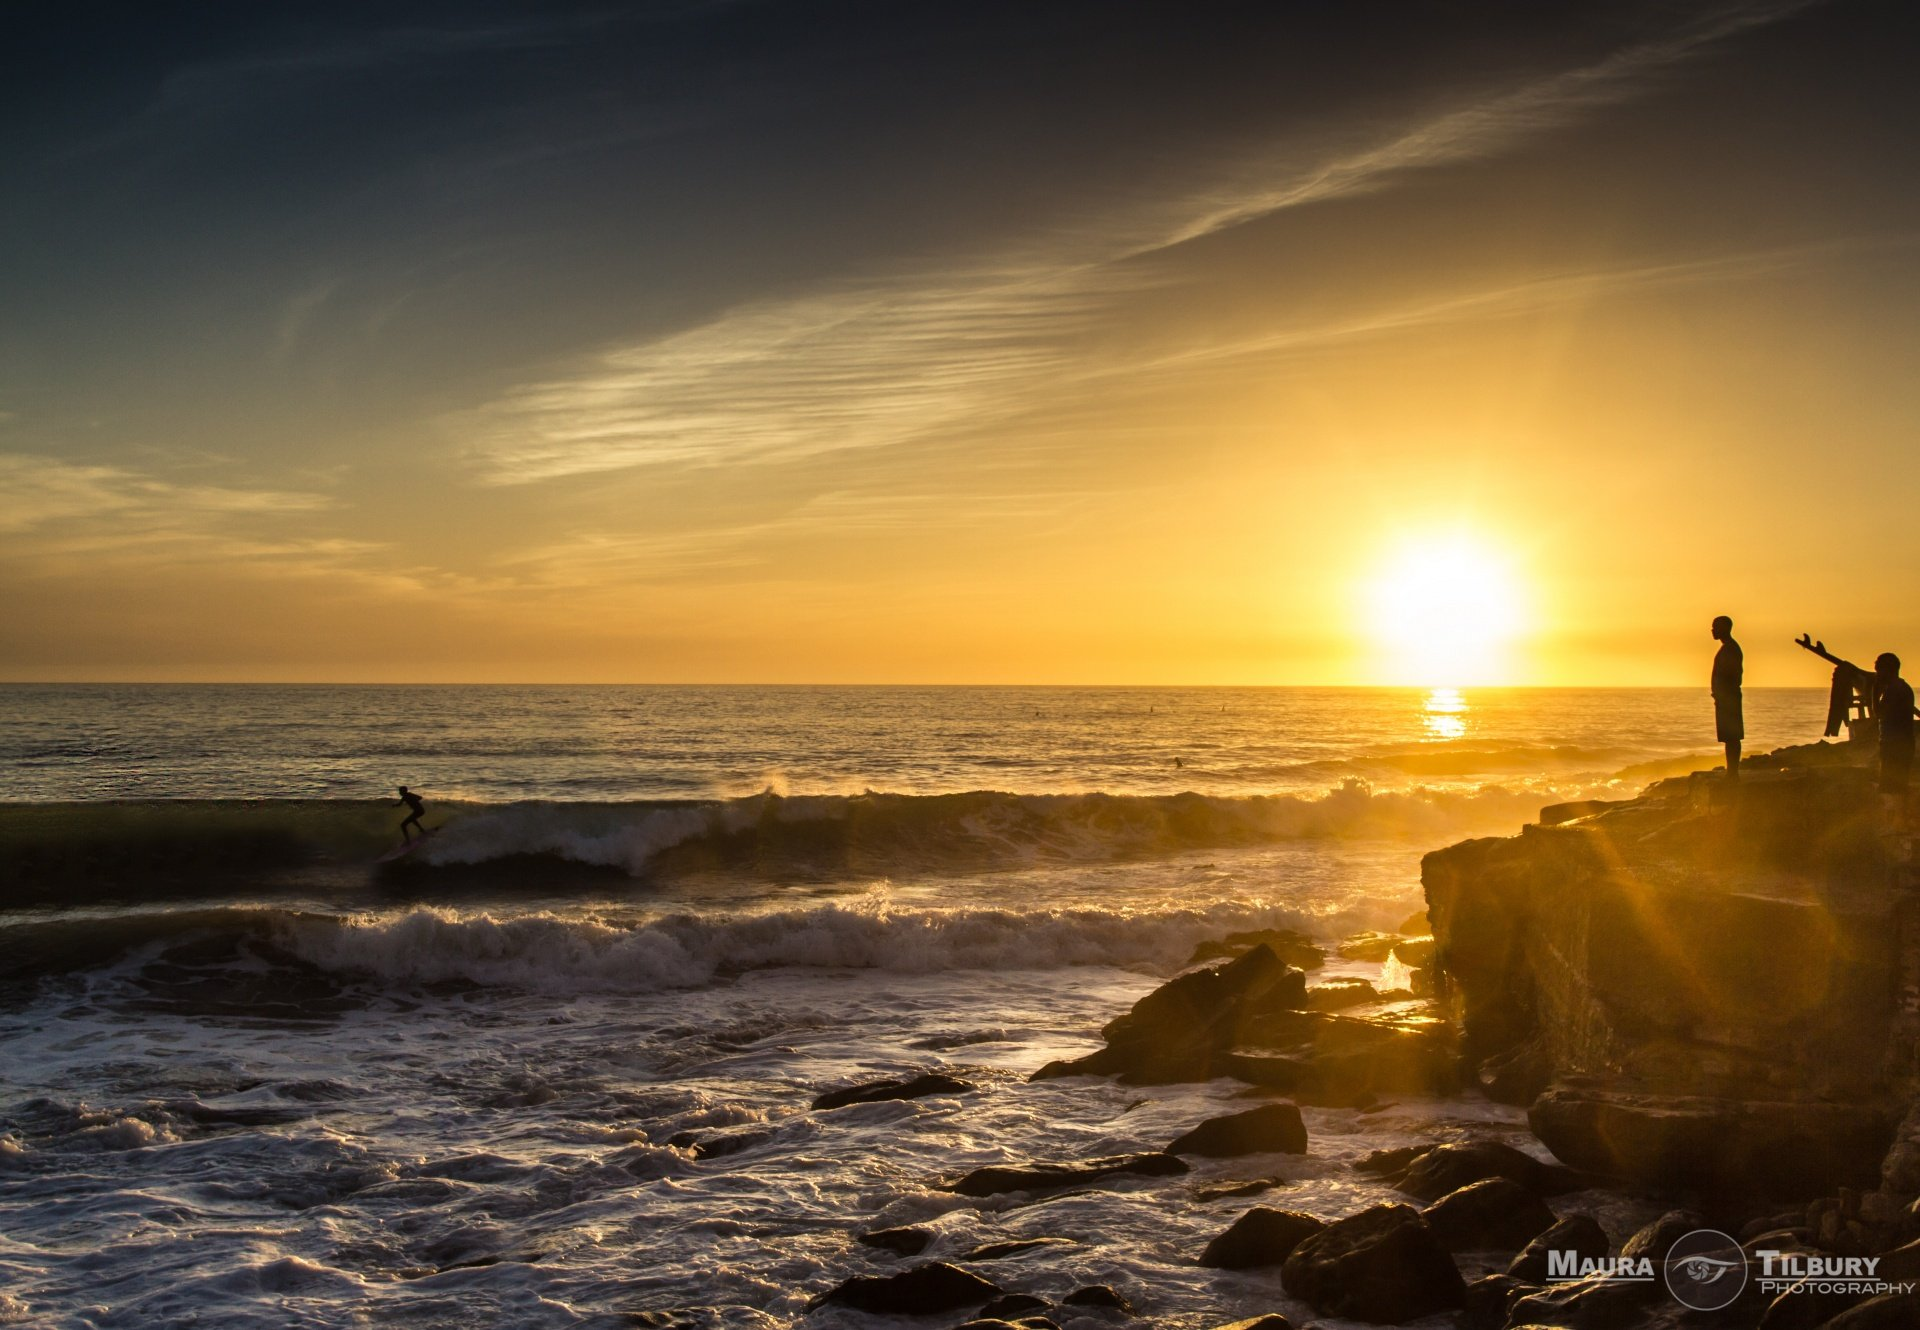 Maura Tilbury Photography's photo of Taghazout